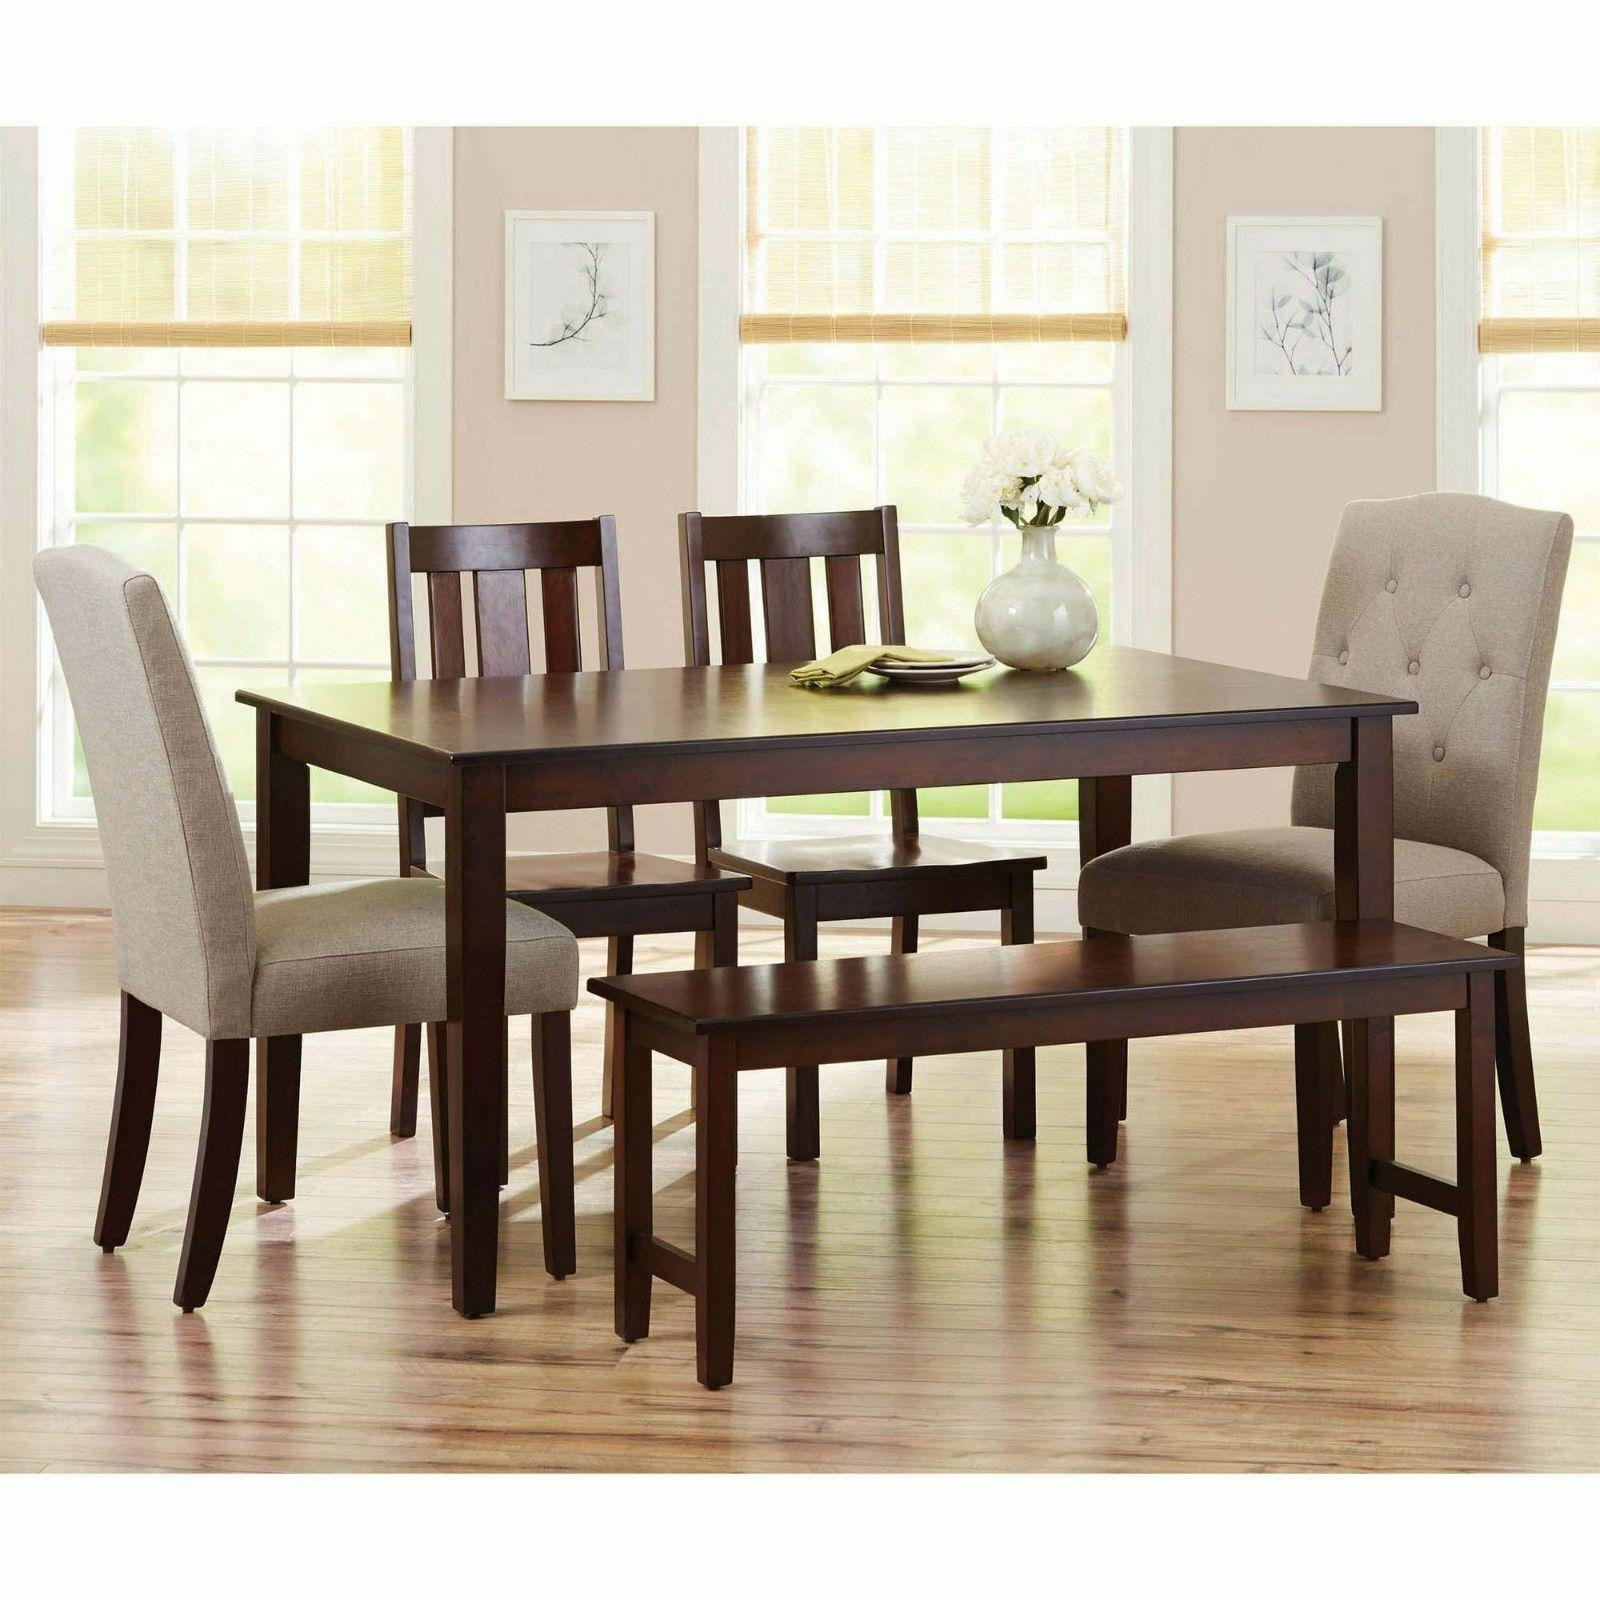 Best Dining Room Table Set Kitchen Tables Chairs Modern Rect